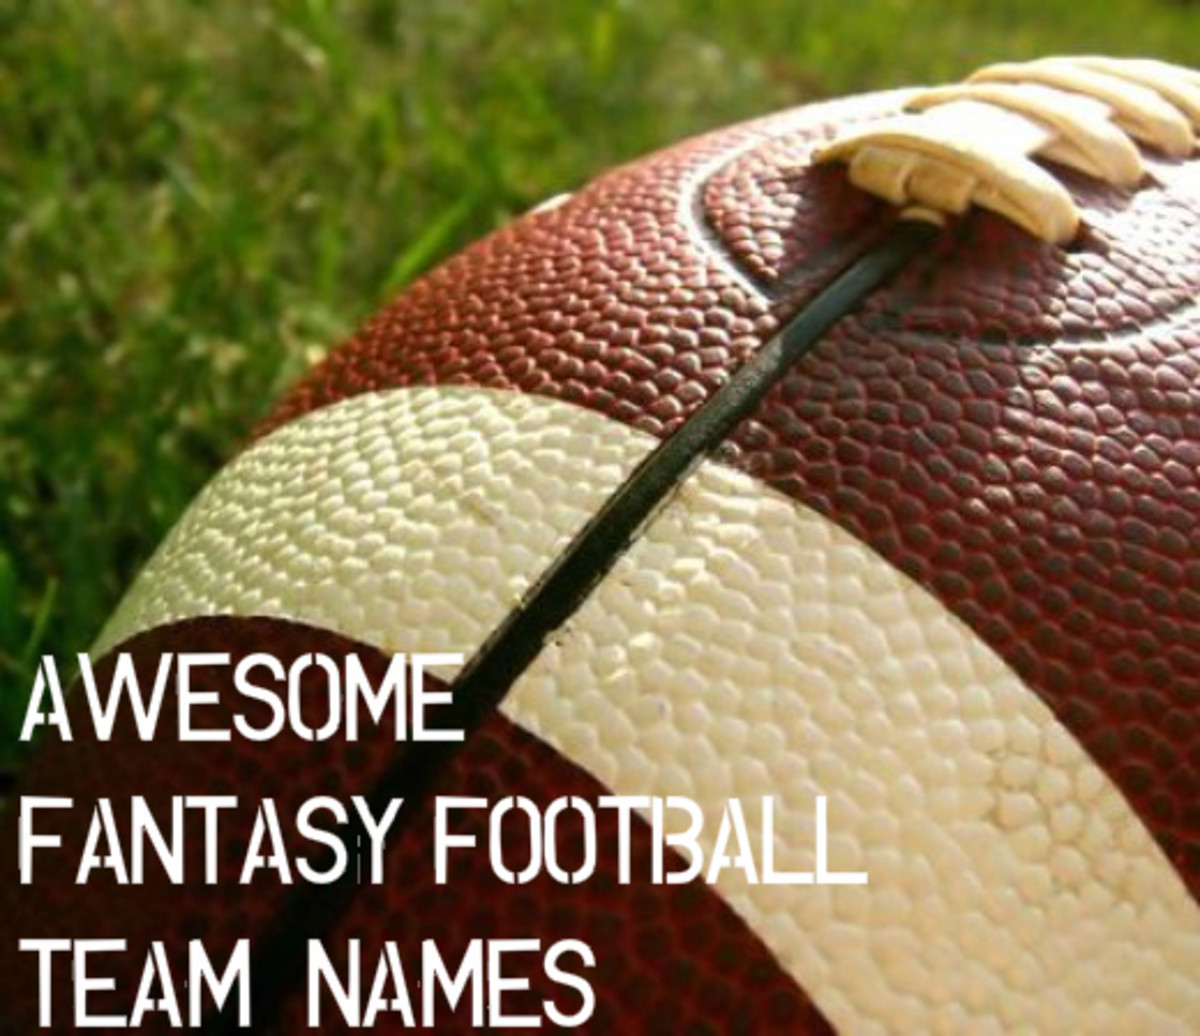 99-awesome-fantasy-football-team-names